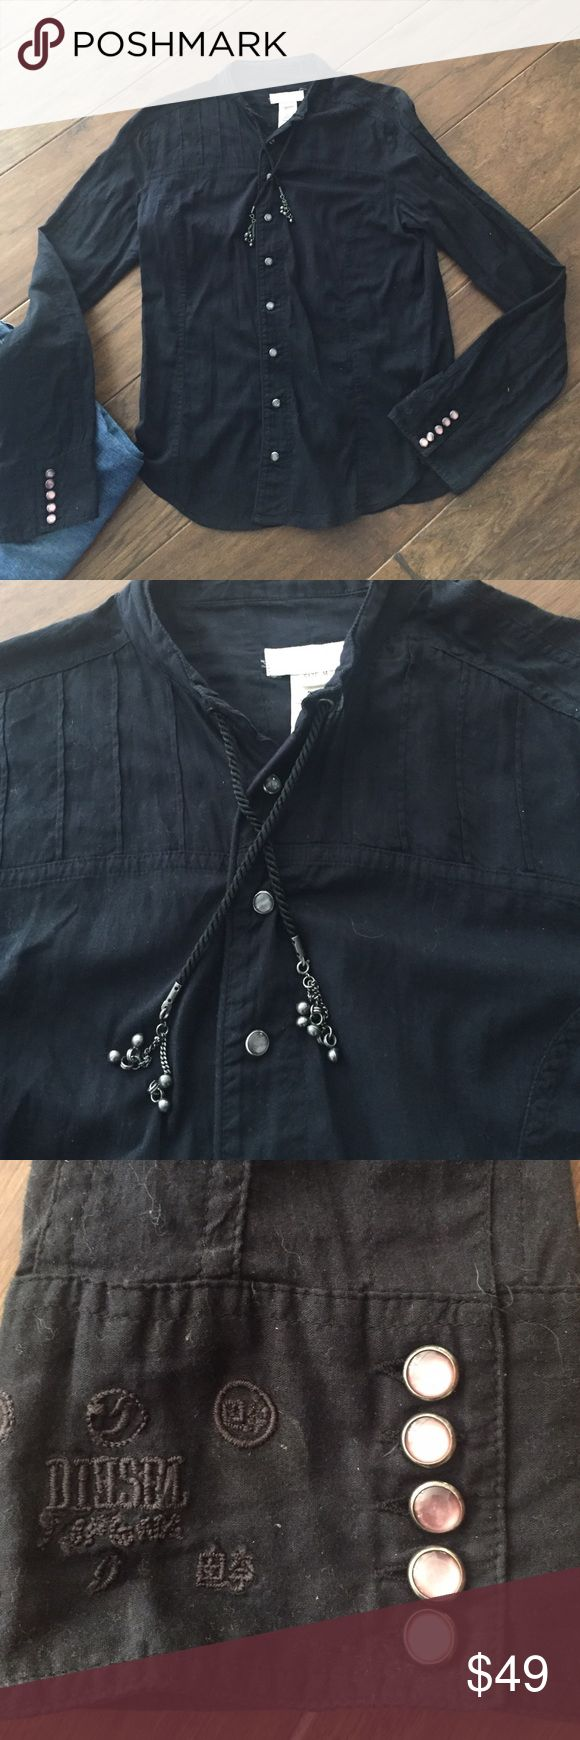 Diesel washed black cotton snap front shirt. 100% light weight Cotton. Has a draw sting neckline that ends with metal chain drop that can jingle a bit 😄. Snap front buttons. 5 matching cuff buttons. A little bit sheer. Great to wear alone or layer with tank. Excellent used condition. Diesel Tops Button Down Shirts